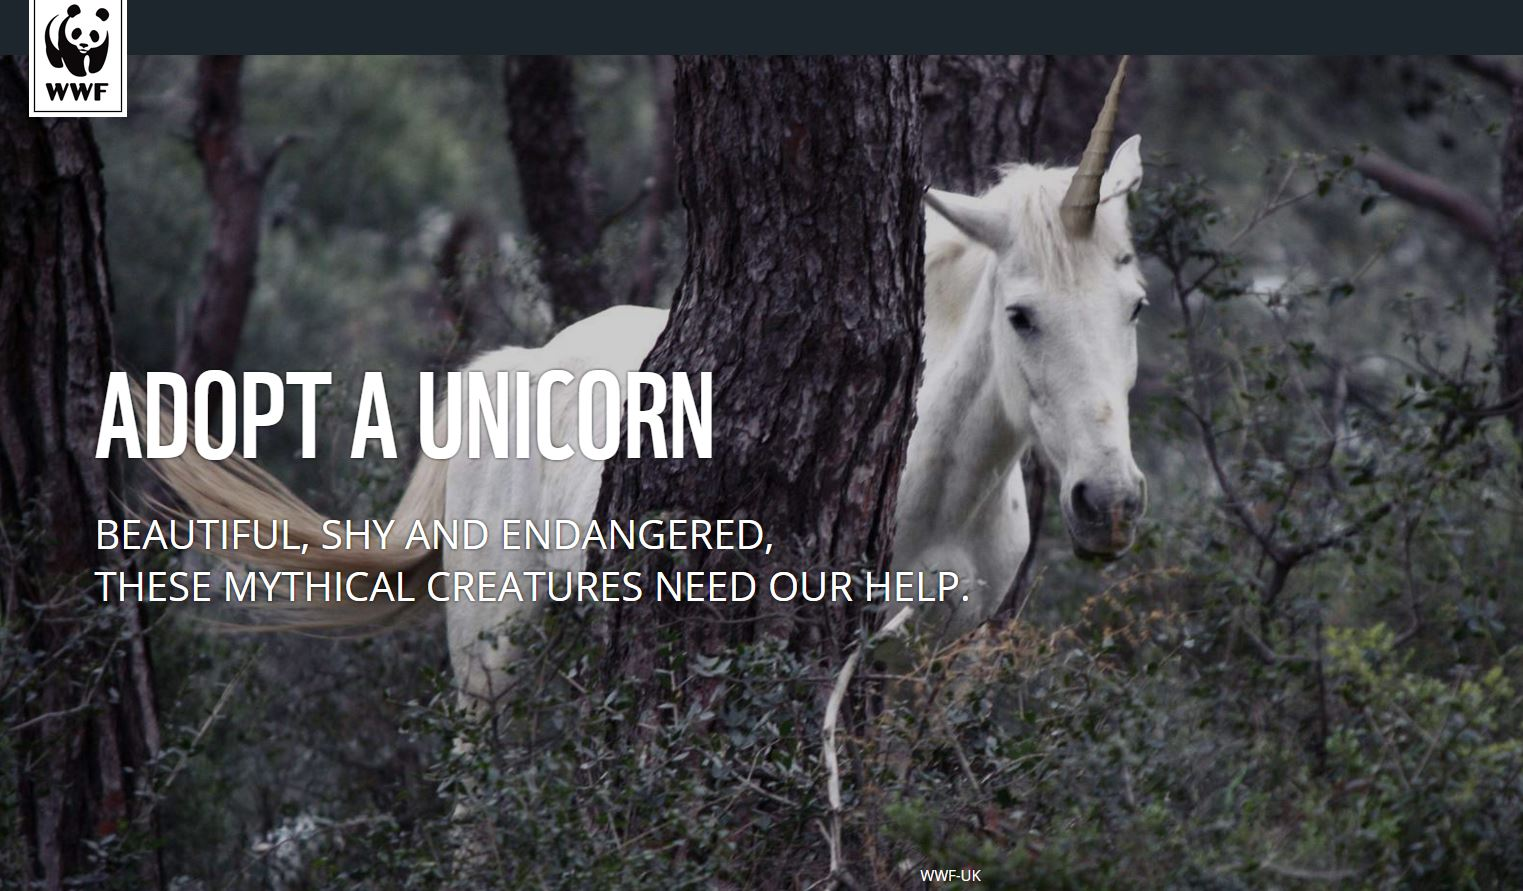 April Fools' 2016 Jokes WWF Unicorns